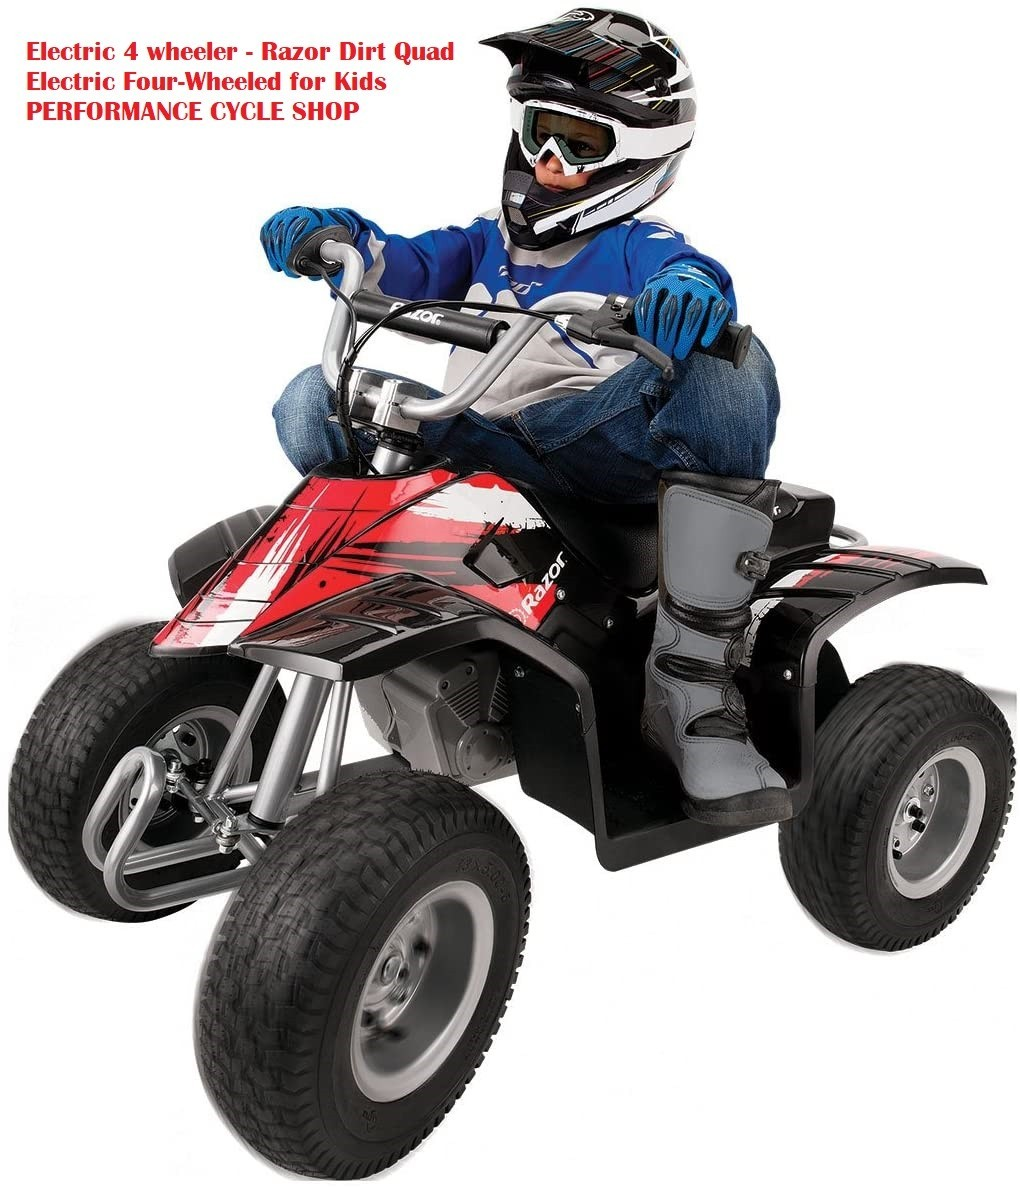 Electric 4 wheeler – Razor Dirt Quad Electric Four-Wheeled Review in 2020